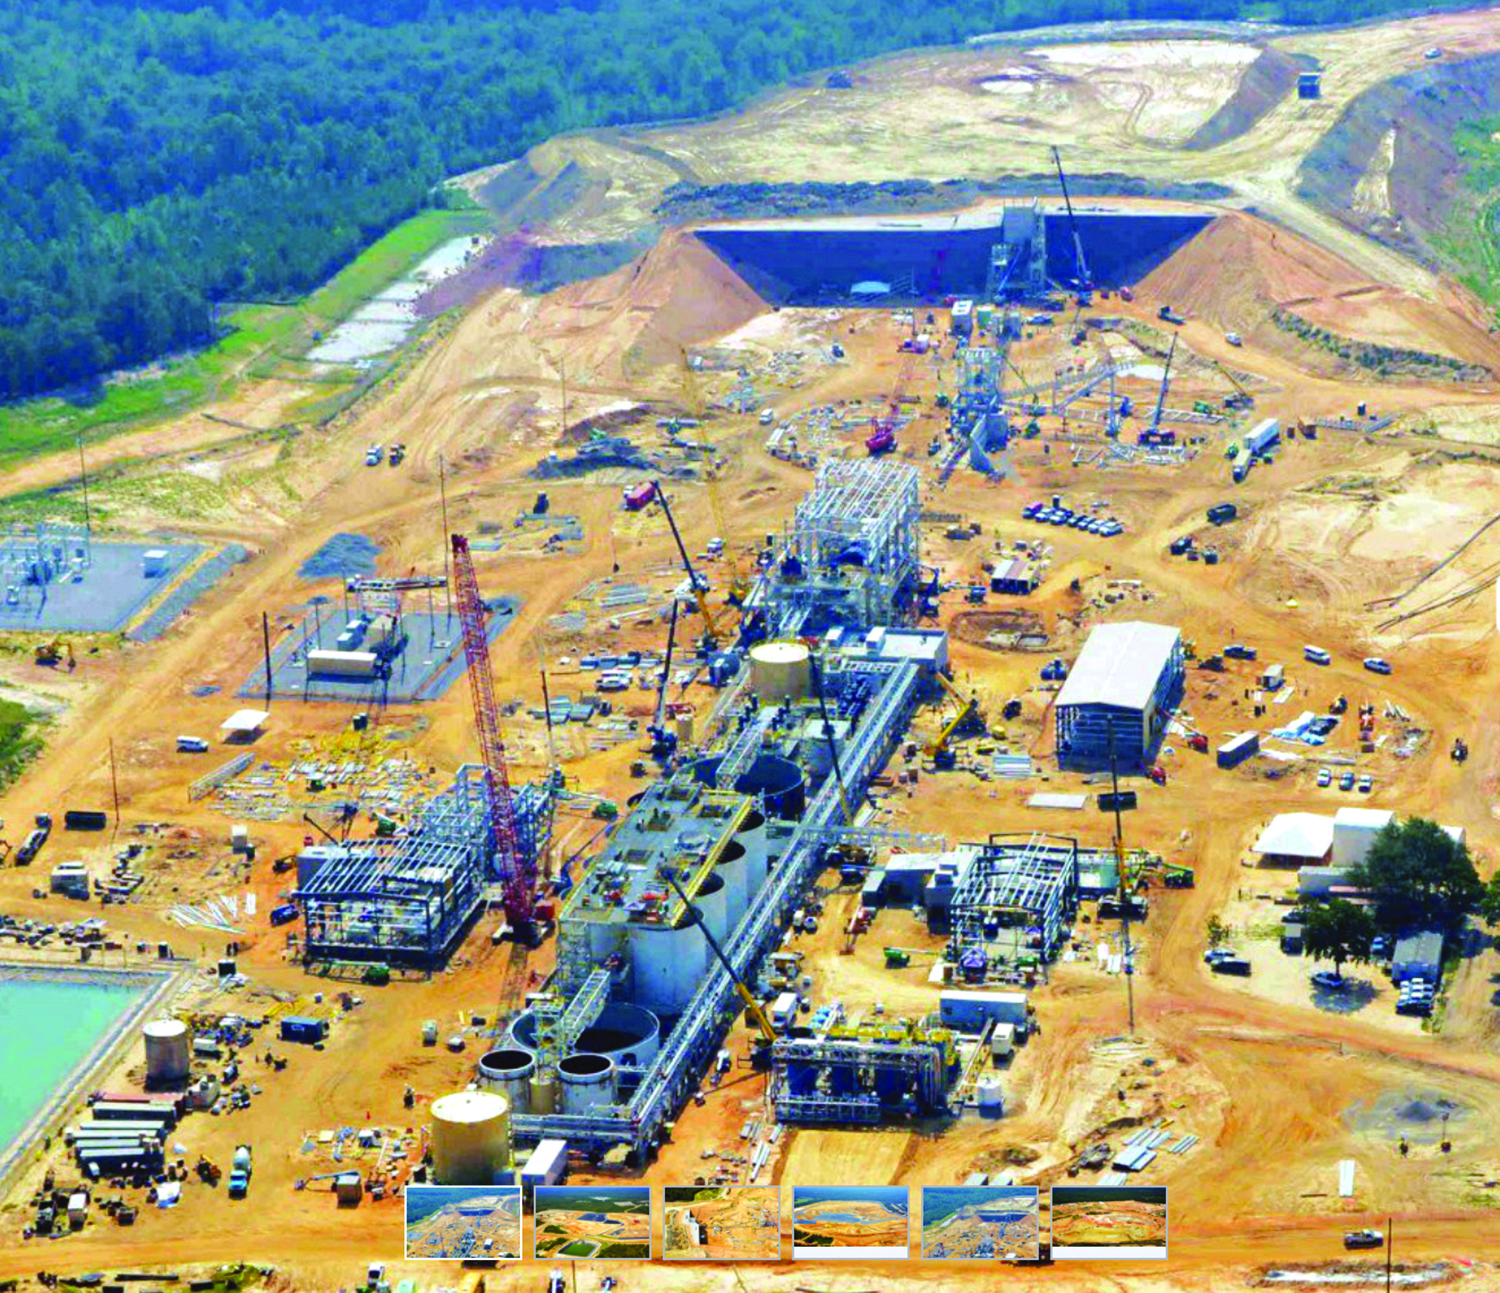 The $380 million Haile mine, shown here during its plant construction phase, is expected to begin production from its surface operations early in 2017. (Photo: OceanaGold)